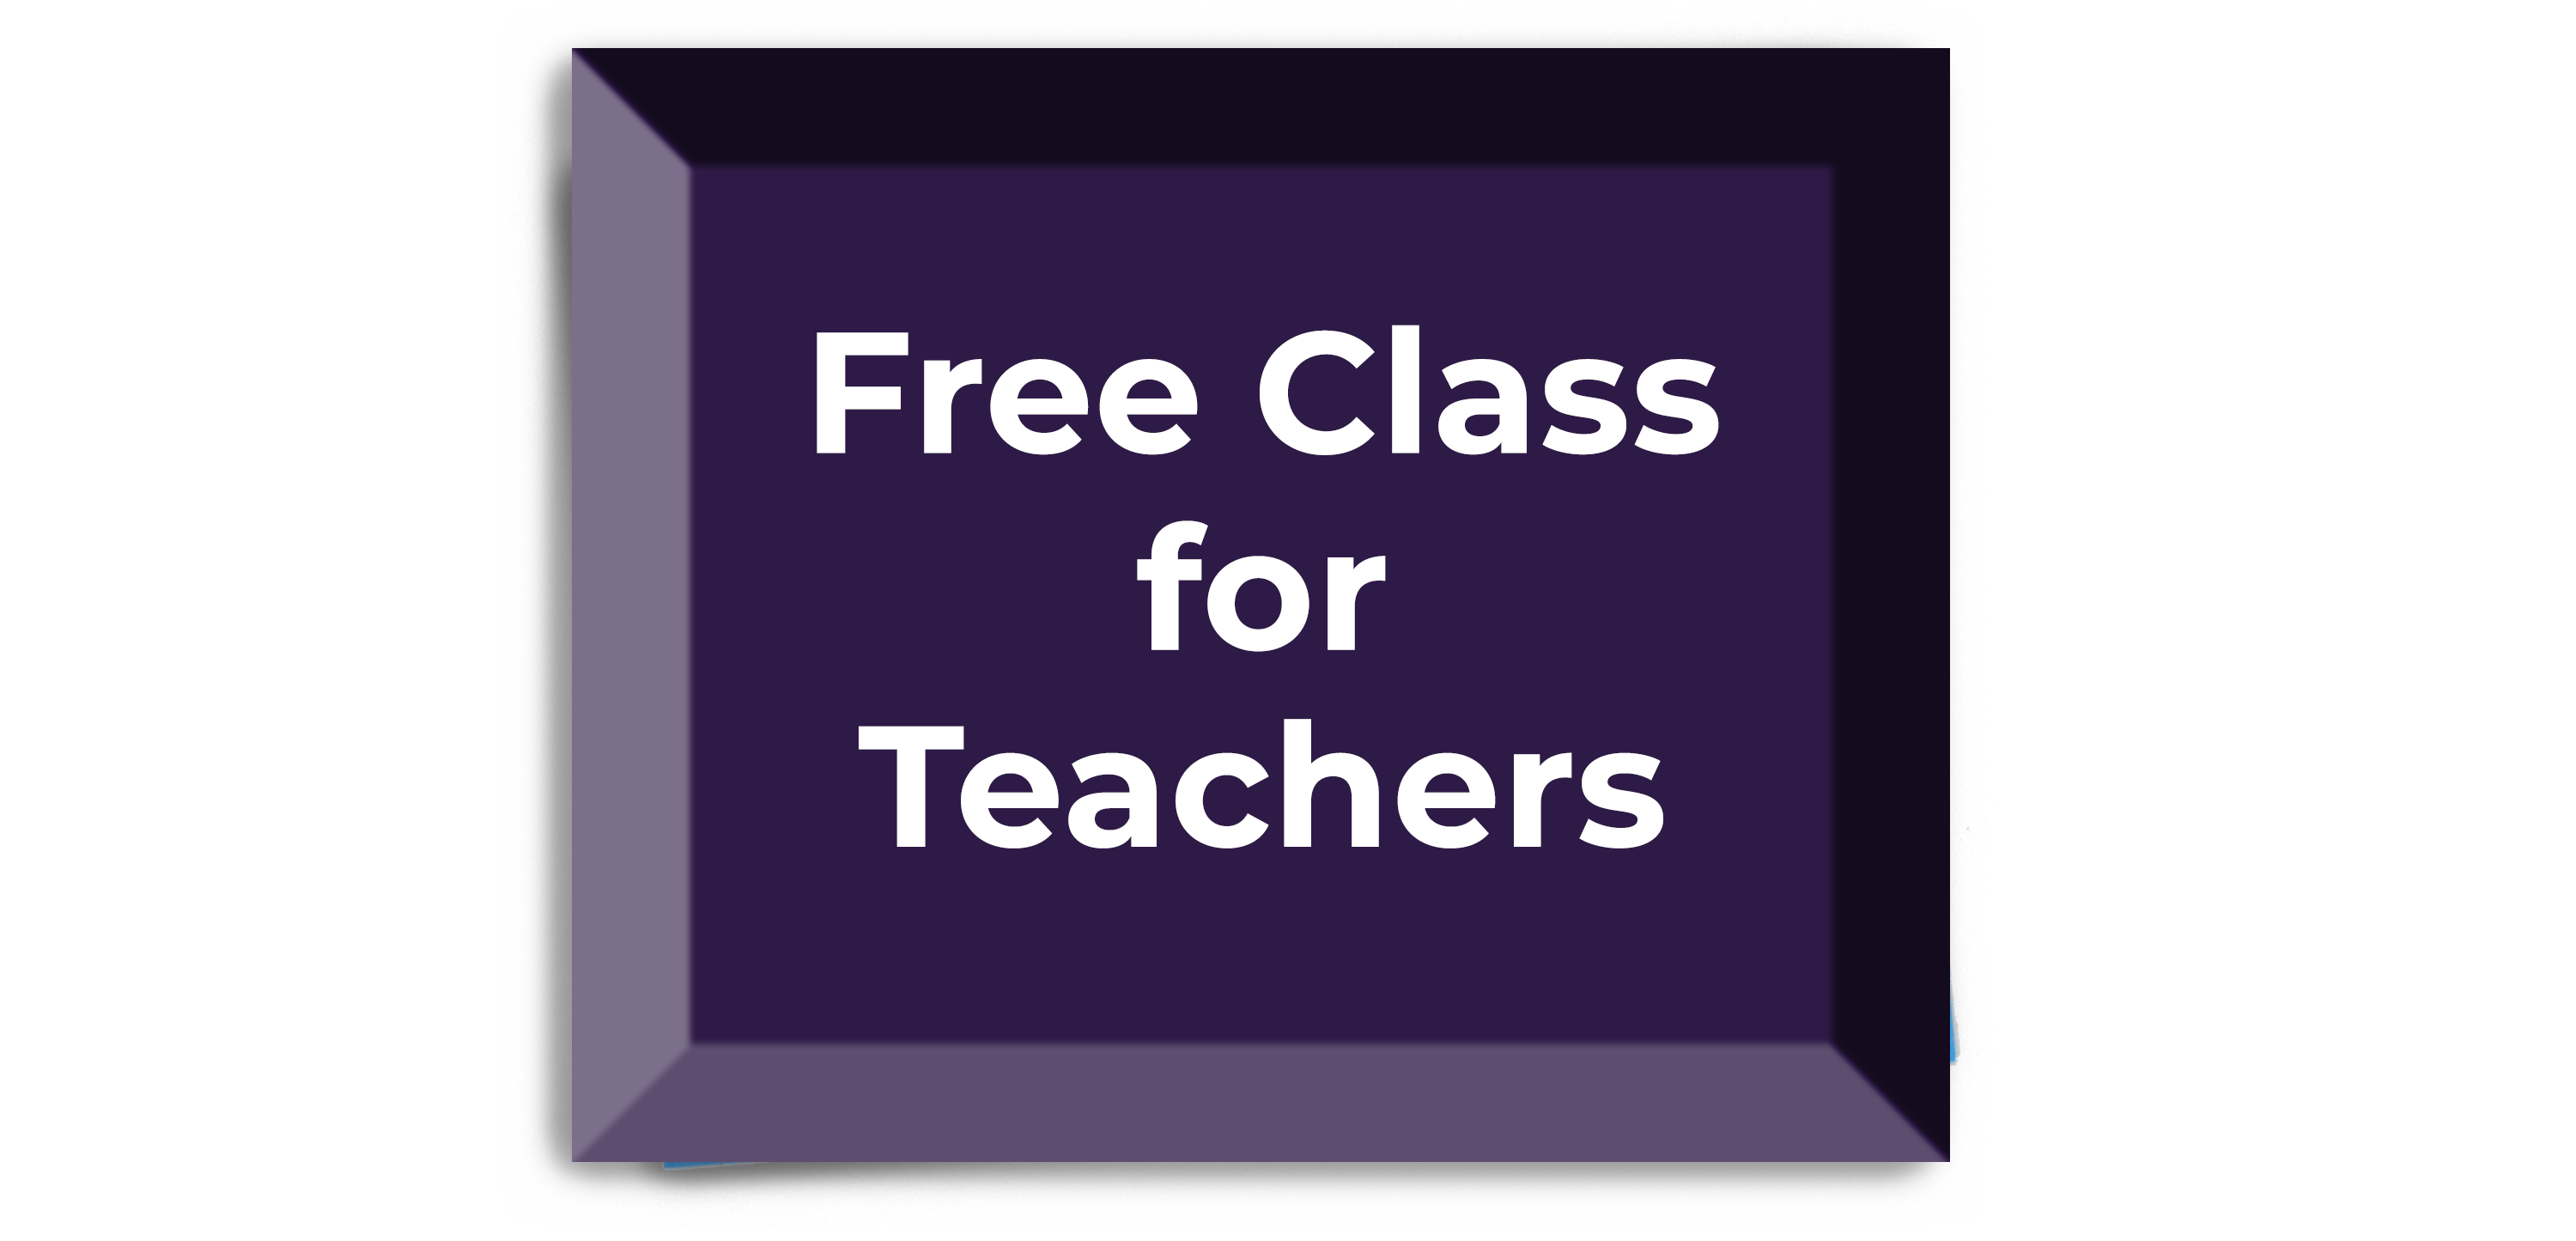 Free Class for Teachers